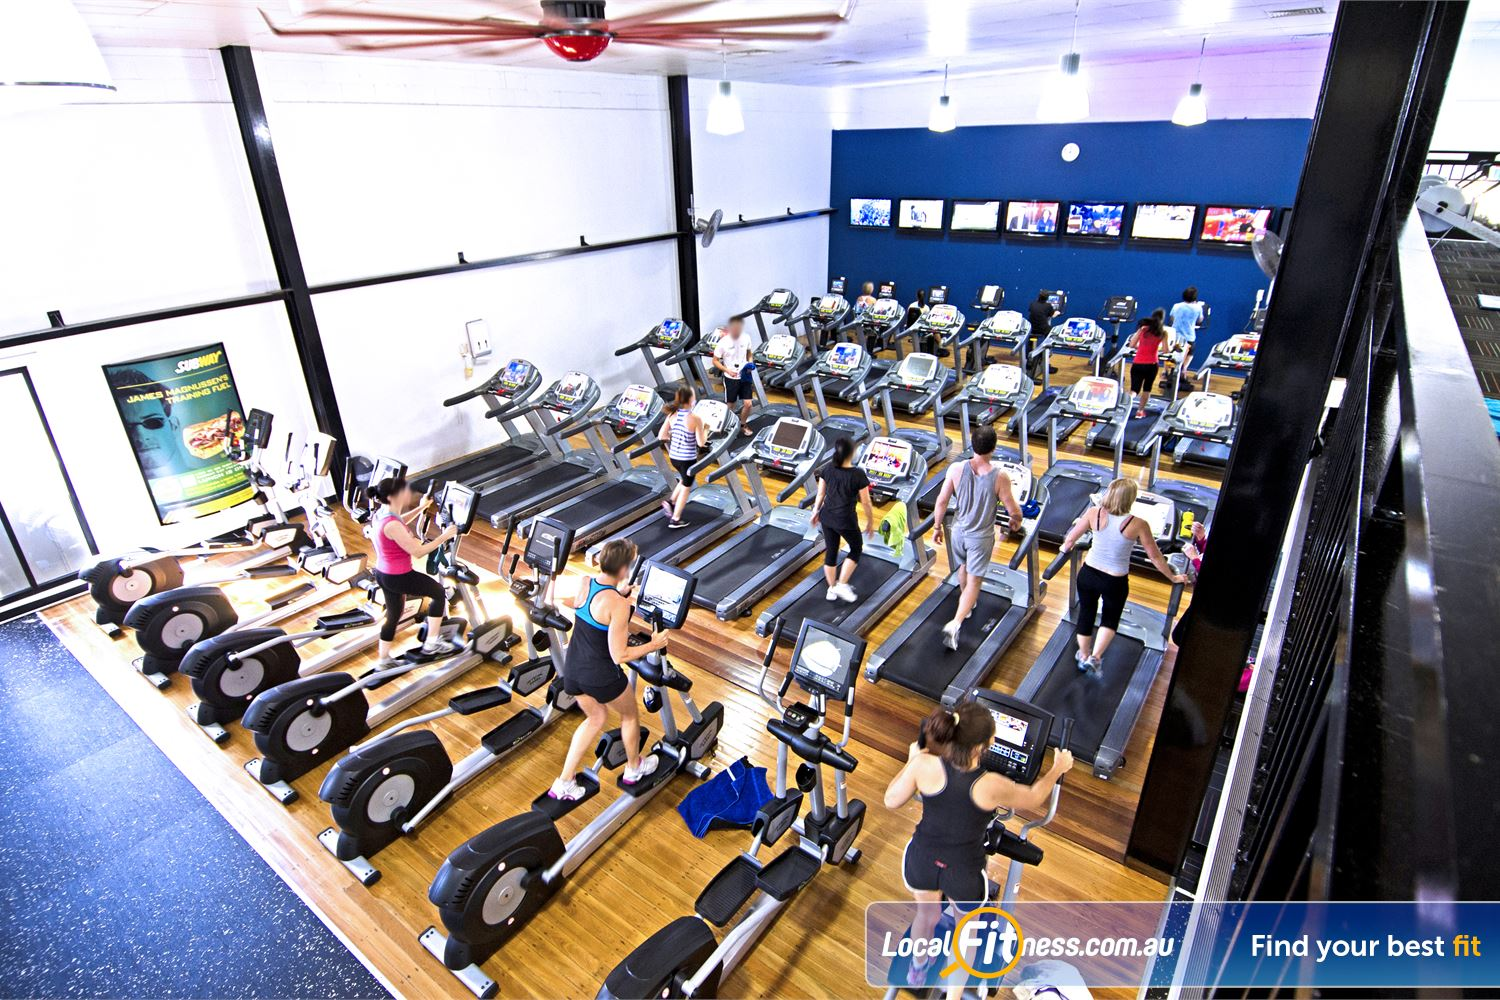 Goodlife Health Clubs Near Sherwood Goodlife Graceville gym provides multiple machines so you don't have to wait.